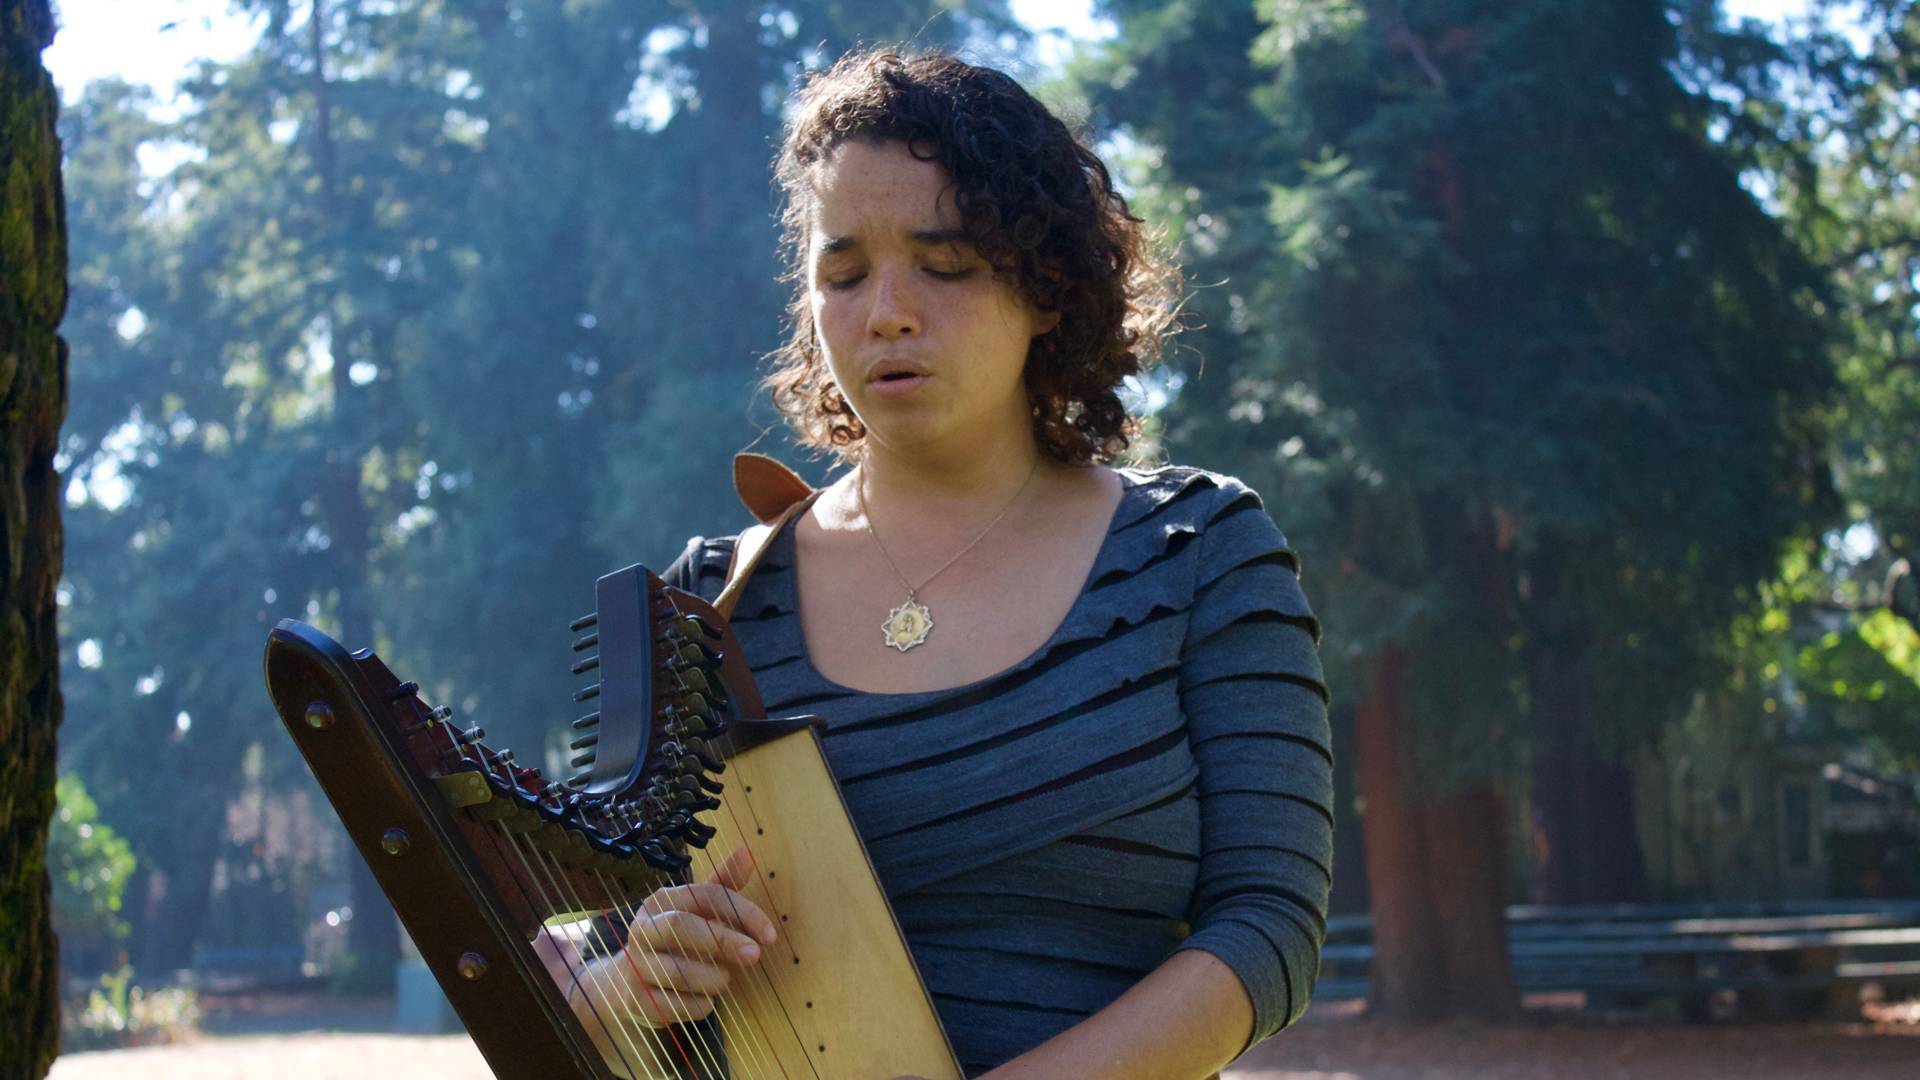 María José Montijo plays her harp at Dimond Park in Oakland. Audrey Garces